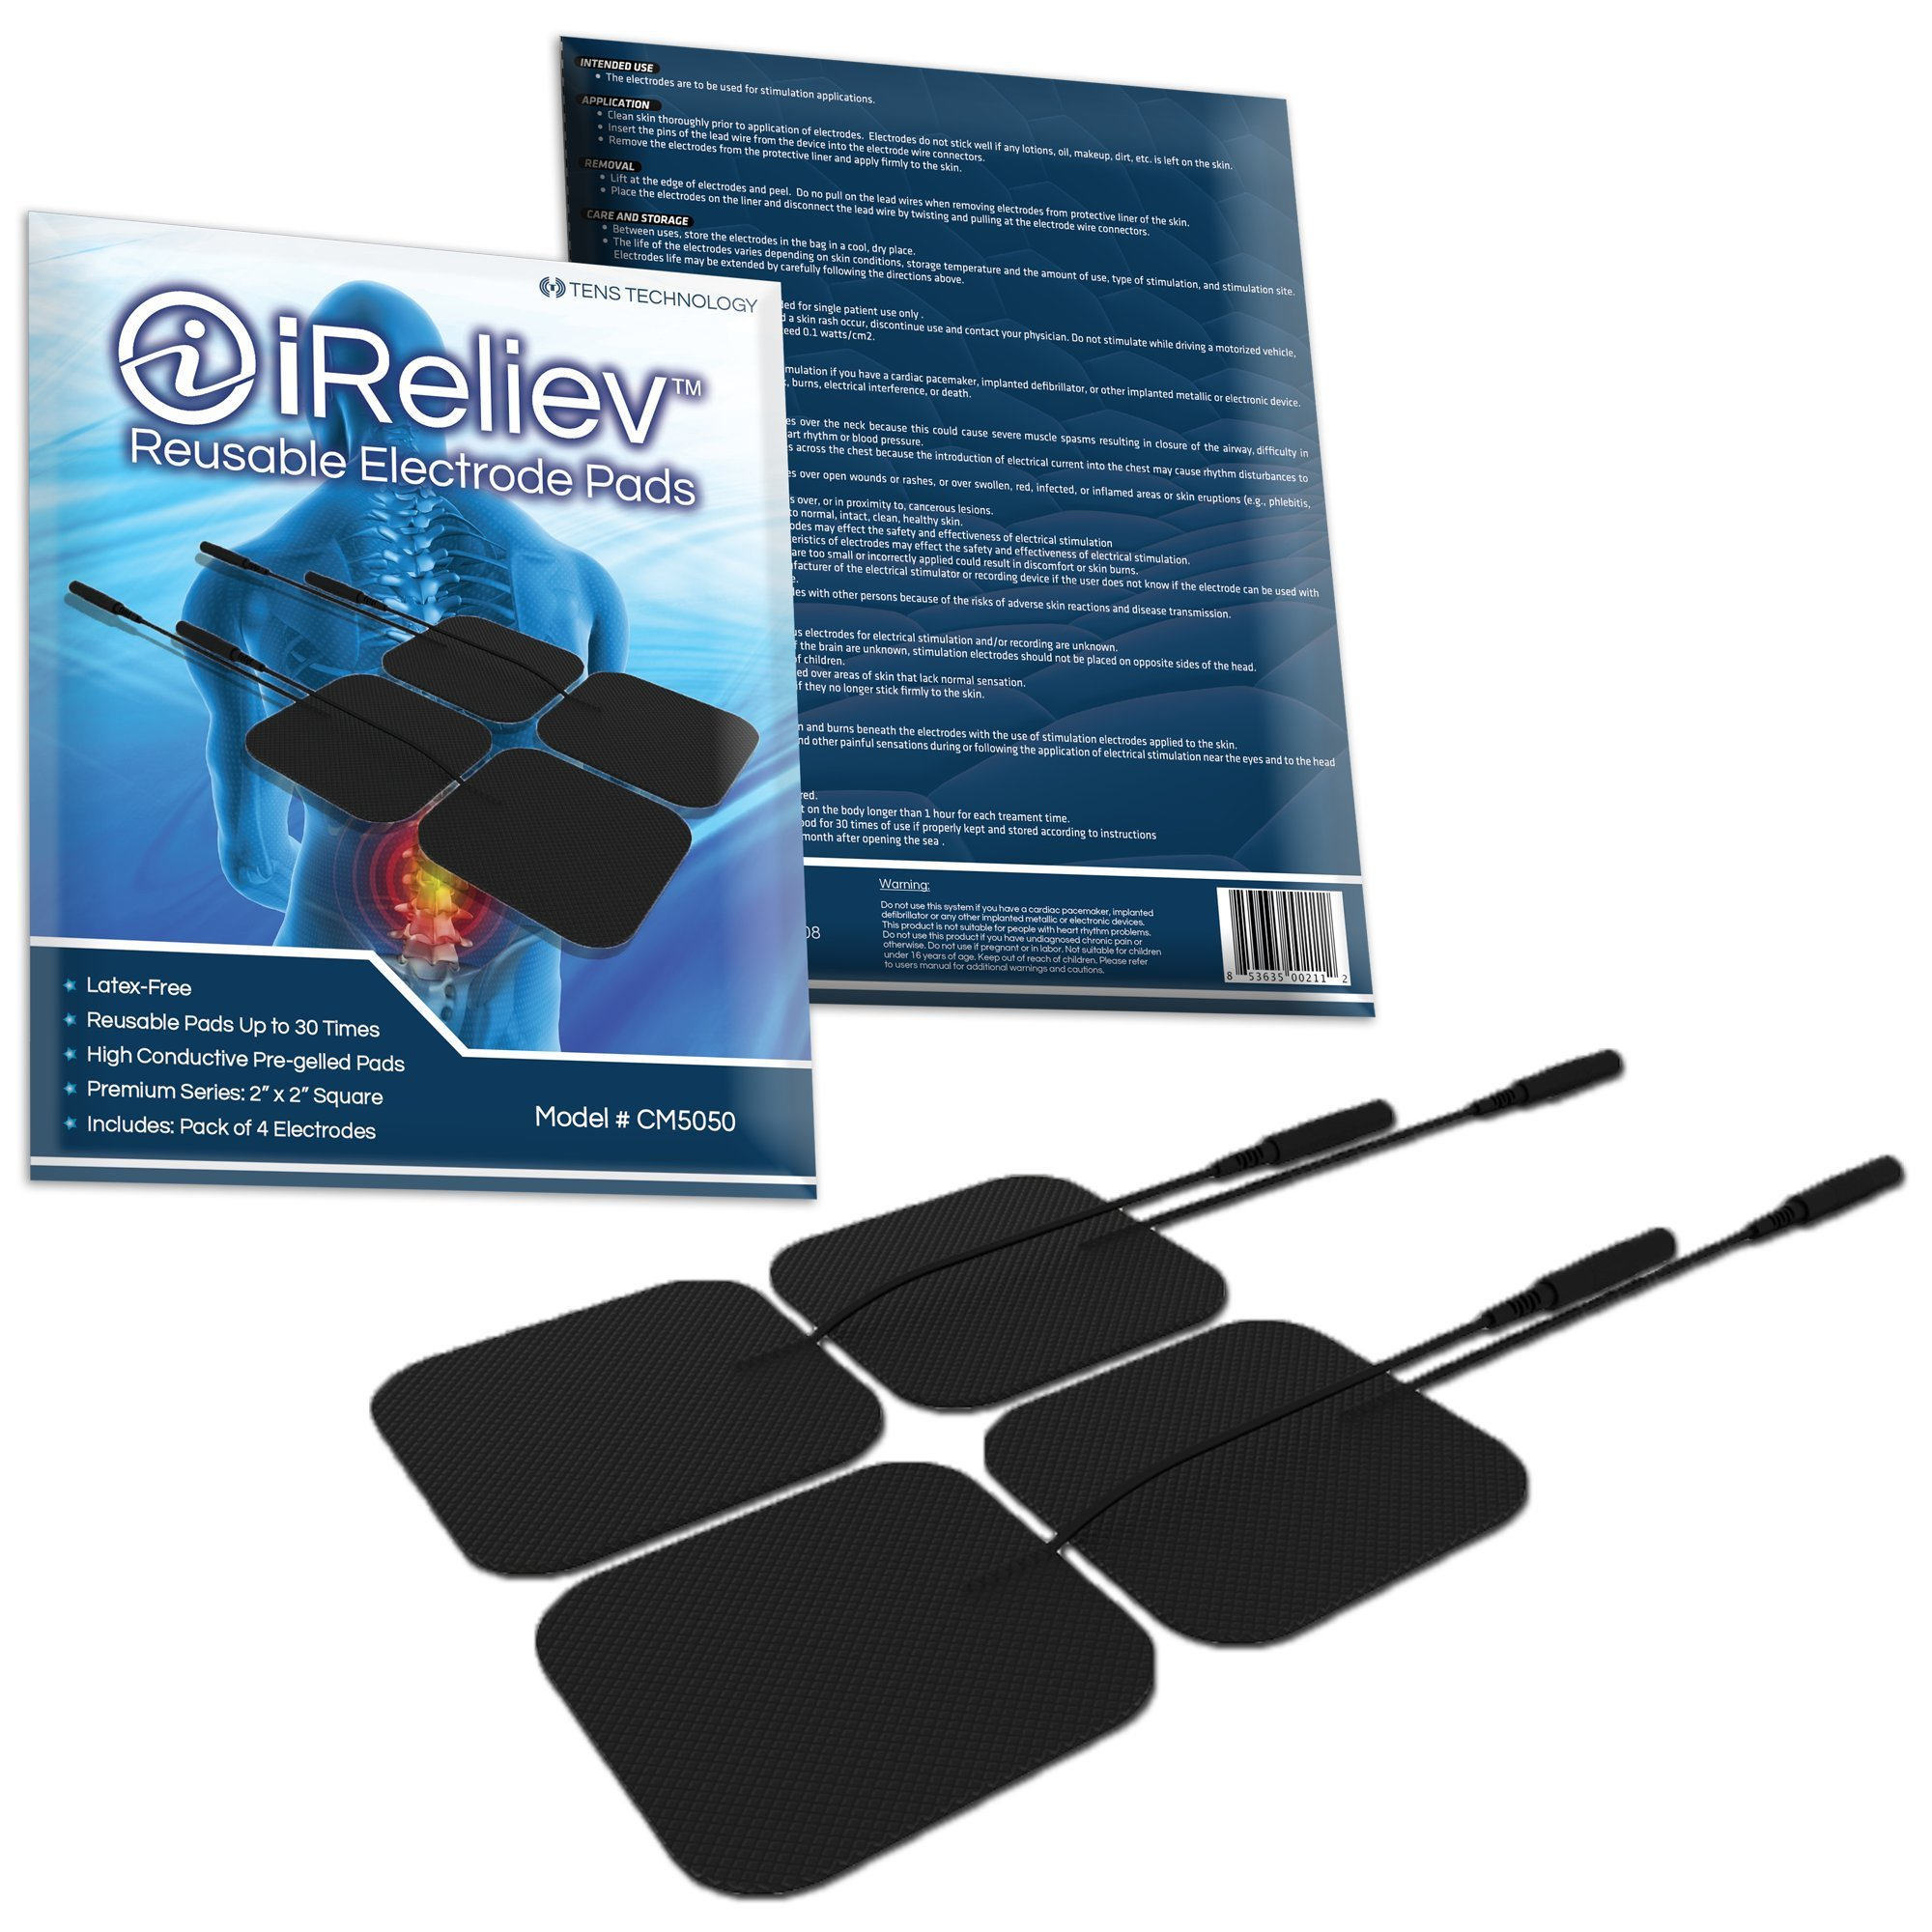 iReliev Premium Reusable TENS IF Muscle Stimulation Electrode Pads with Excellent Dispersion, 1 Pack of 4 Pads